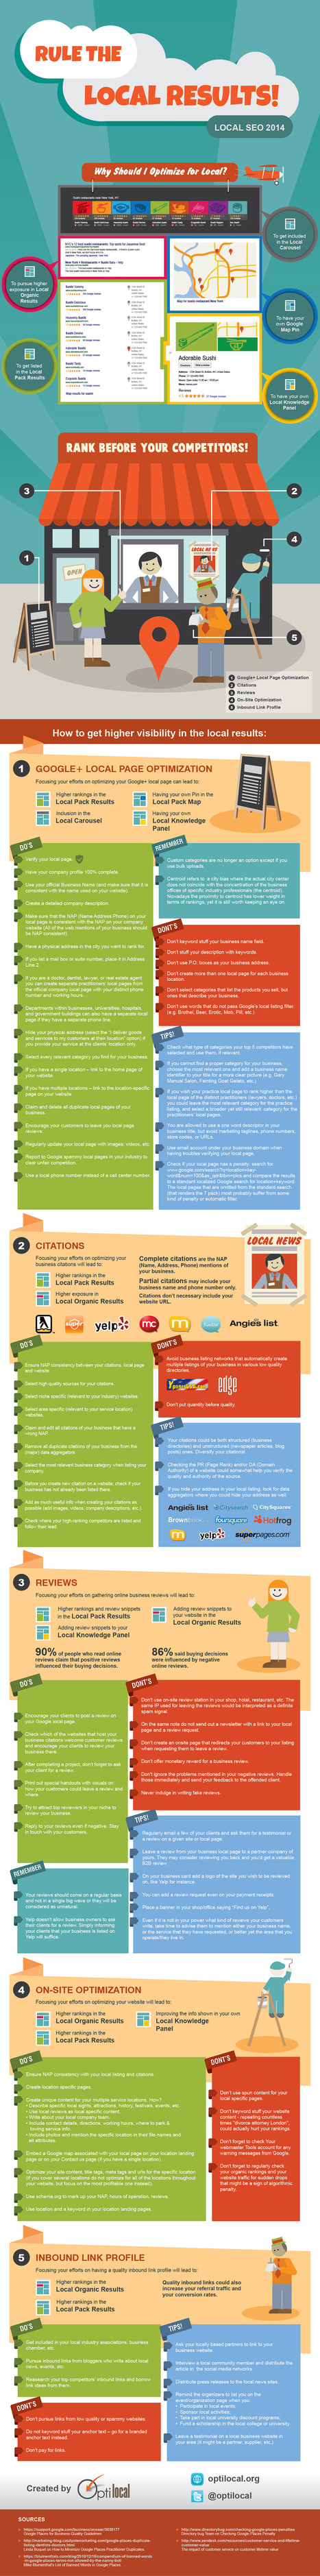 Infographie : Le SEO Local | L'Infographie | Scoop.it